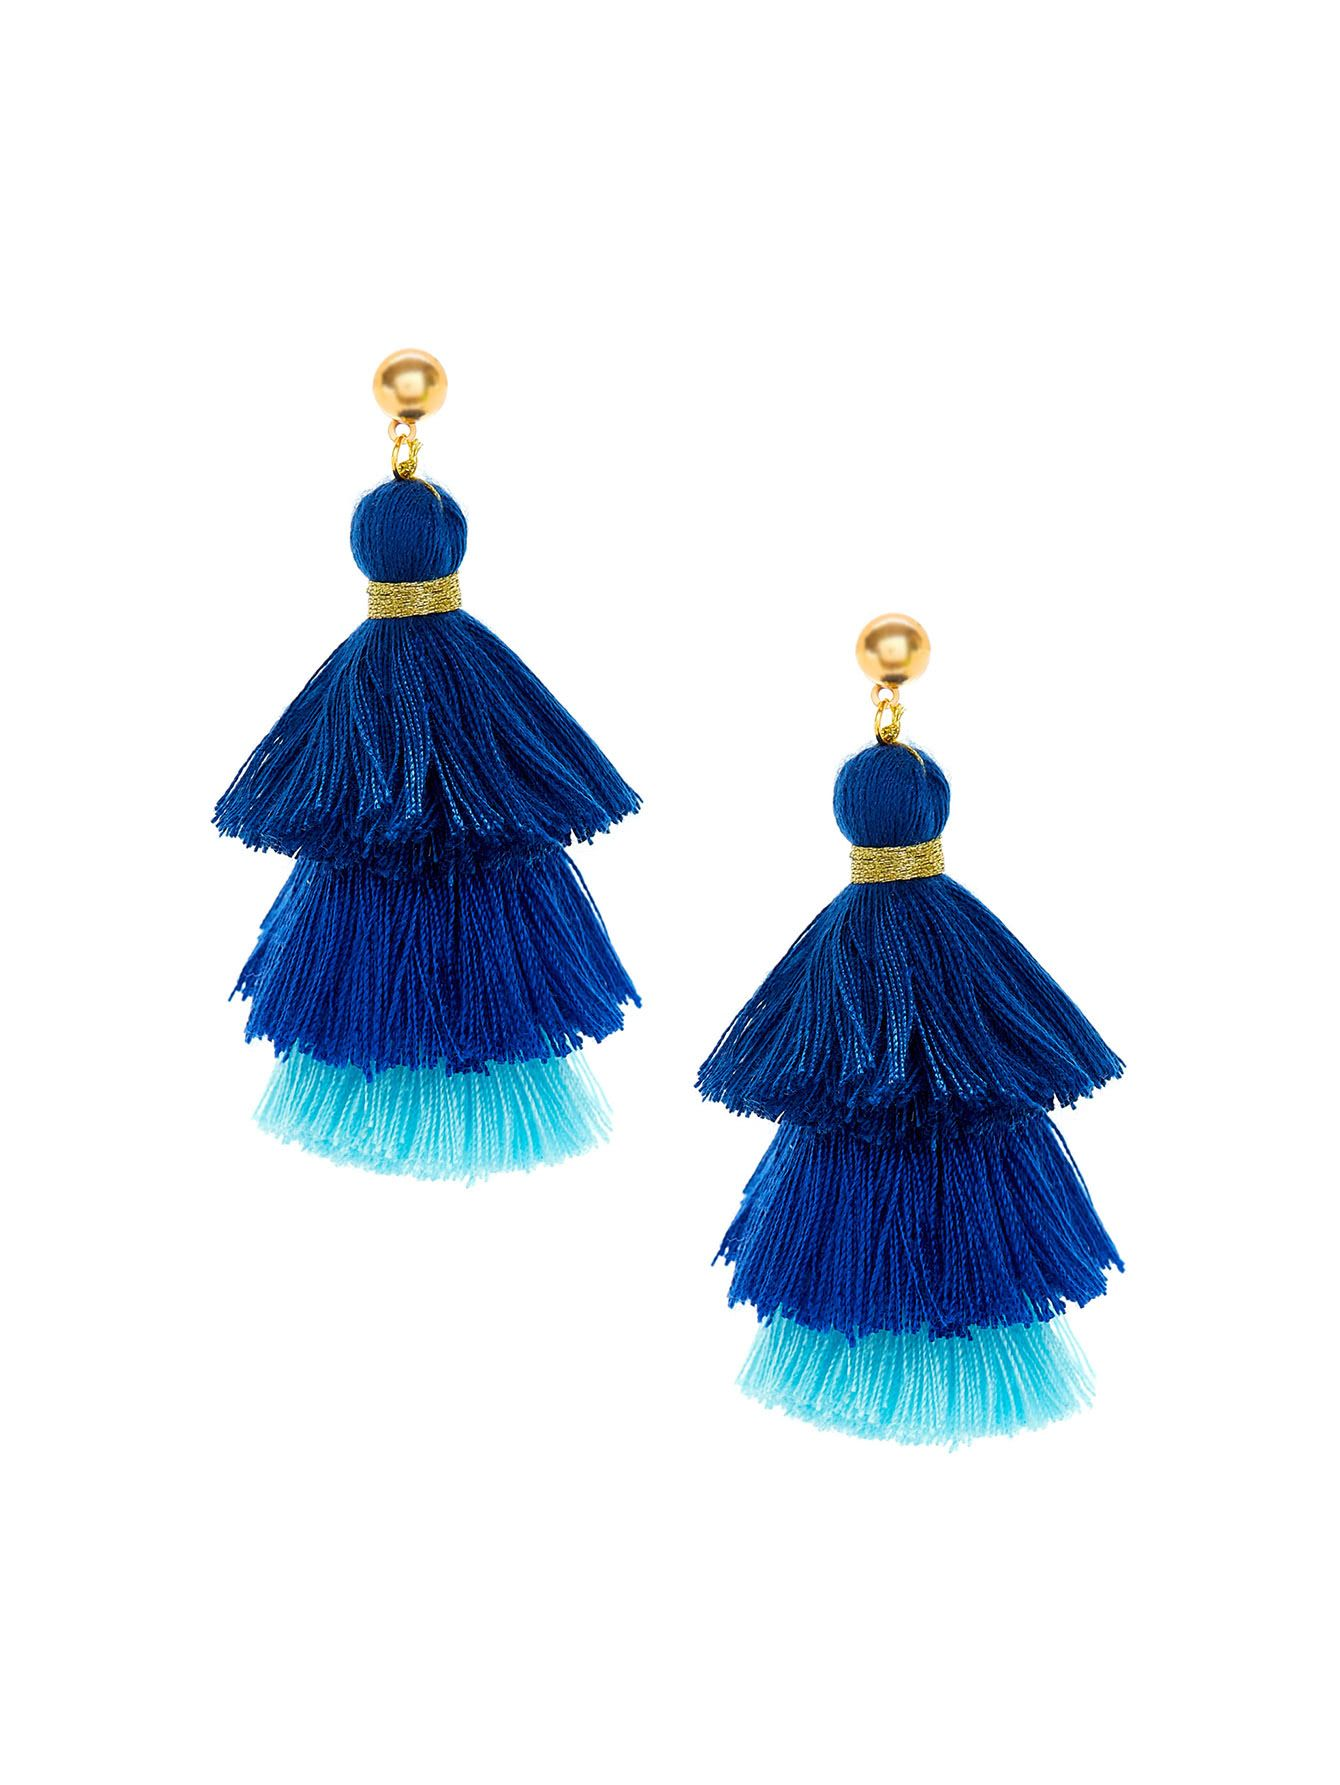 572a07940 Shop Two Tone Layered Tassel Drop Earrings online. SheIn offers Two Tone Layered  Tassel Drop Earrings & more to fit your fashionable needs.